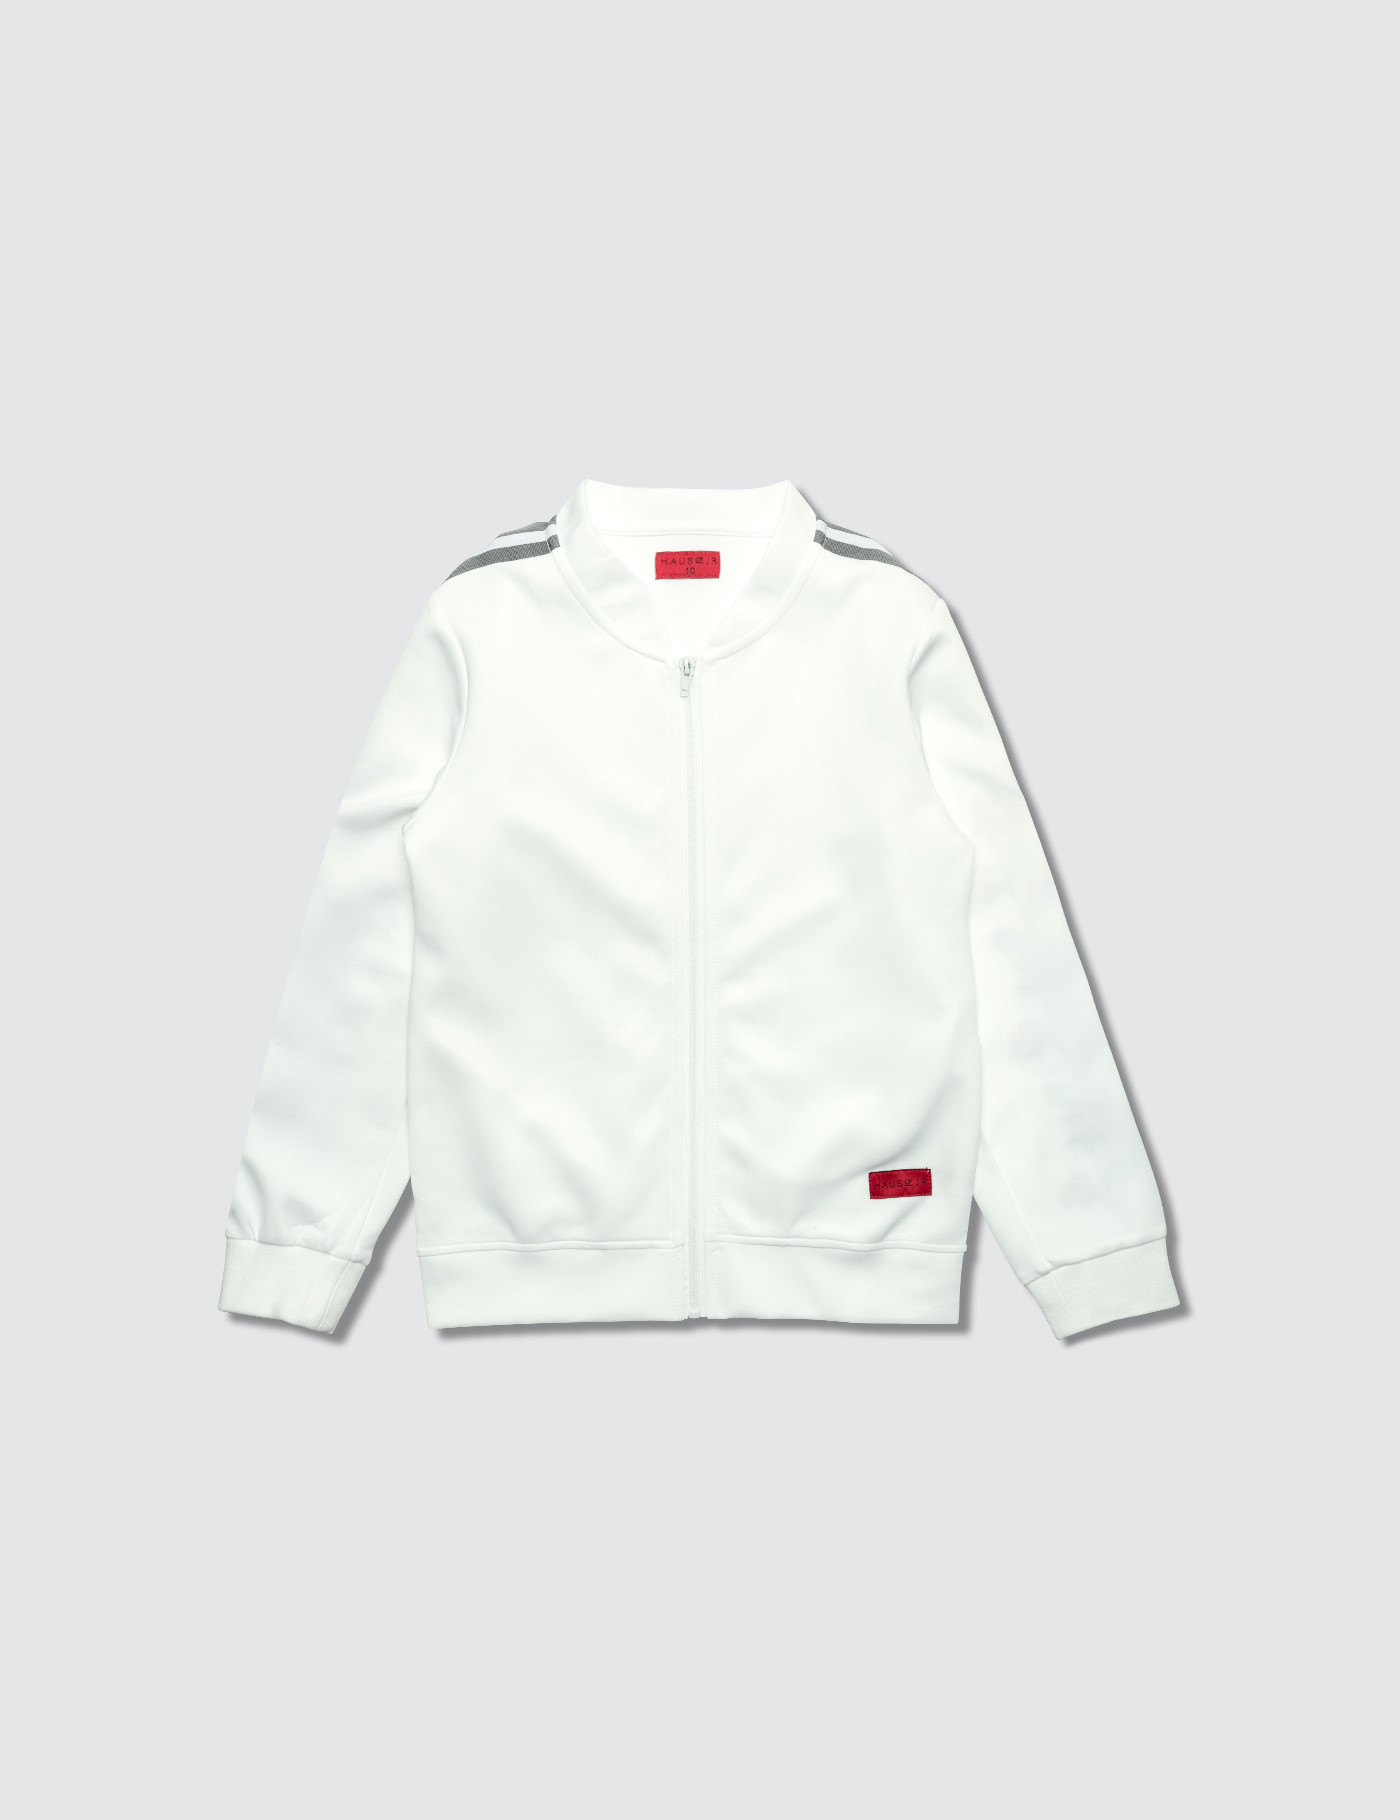 Haus of JR Haiden Track Jacket